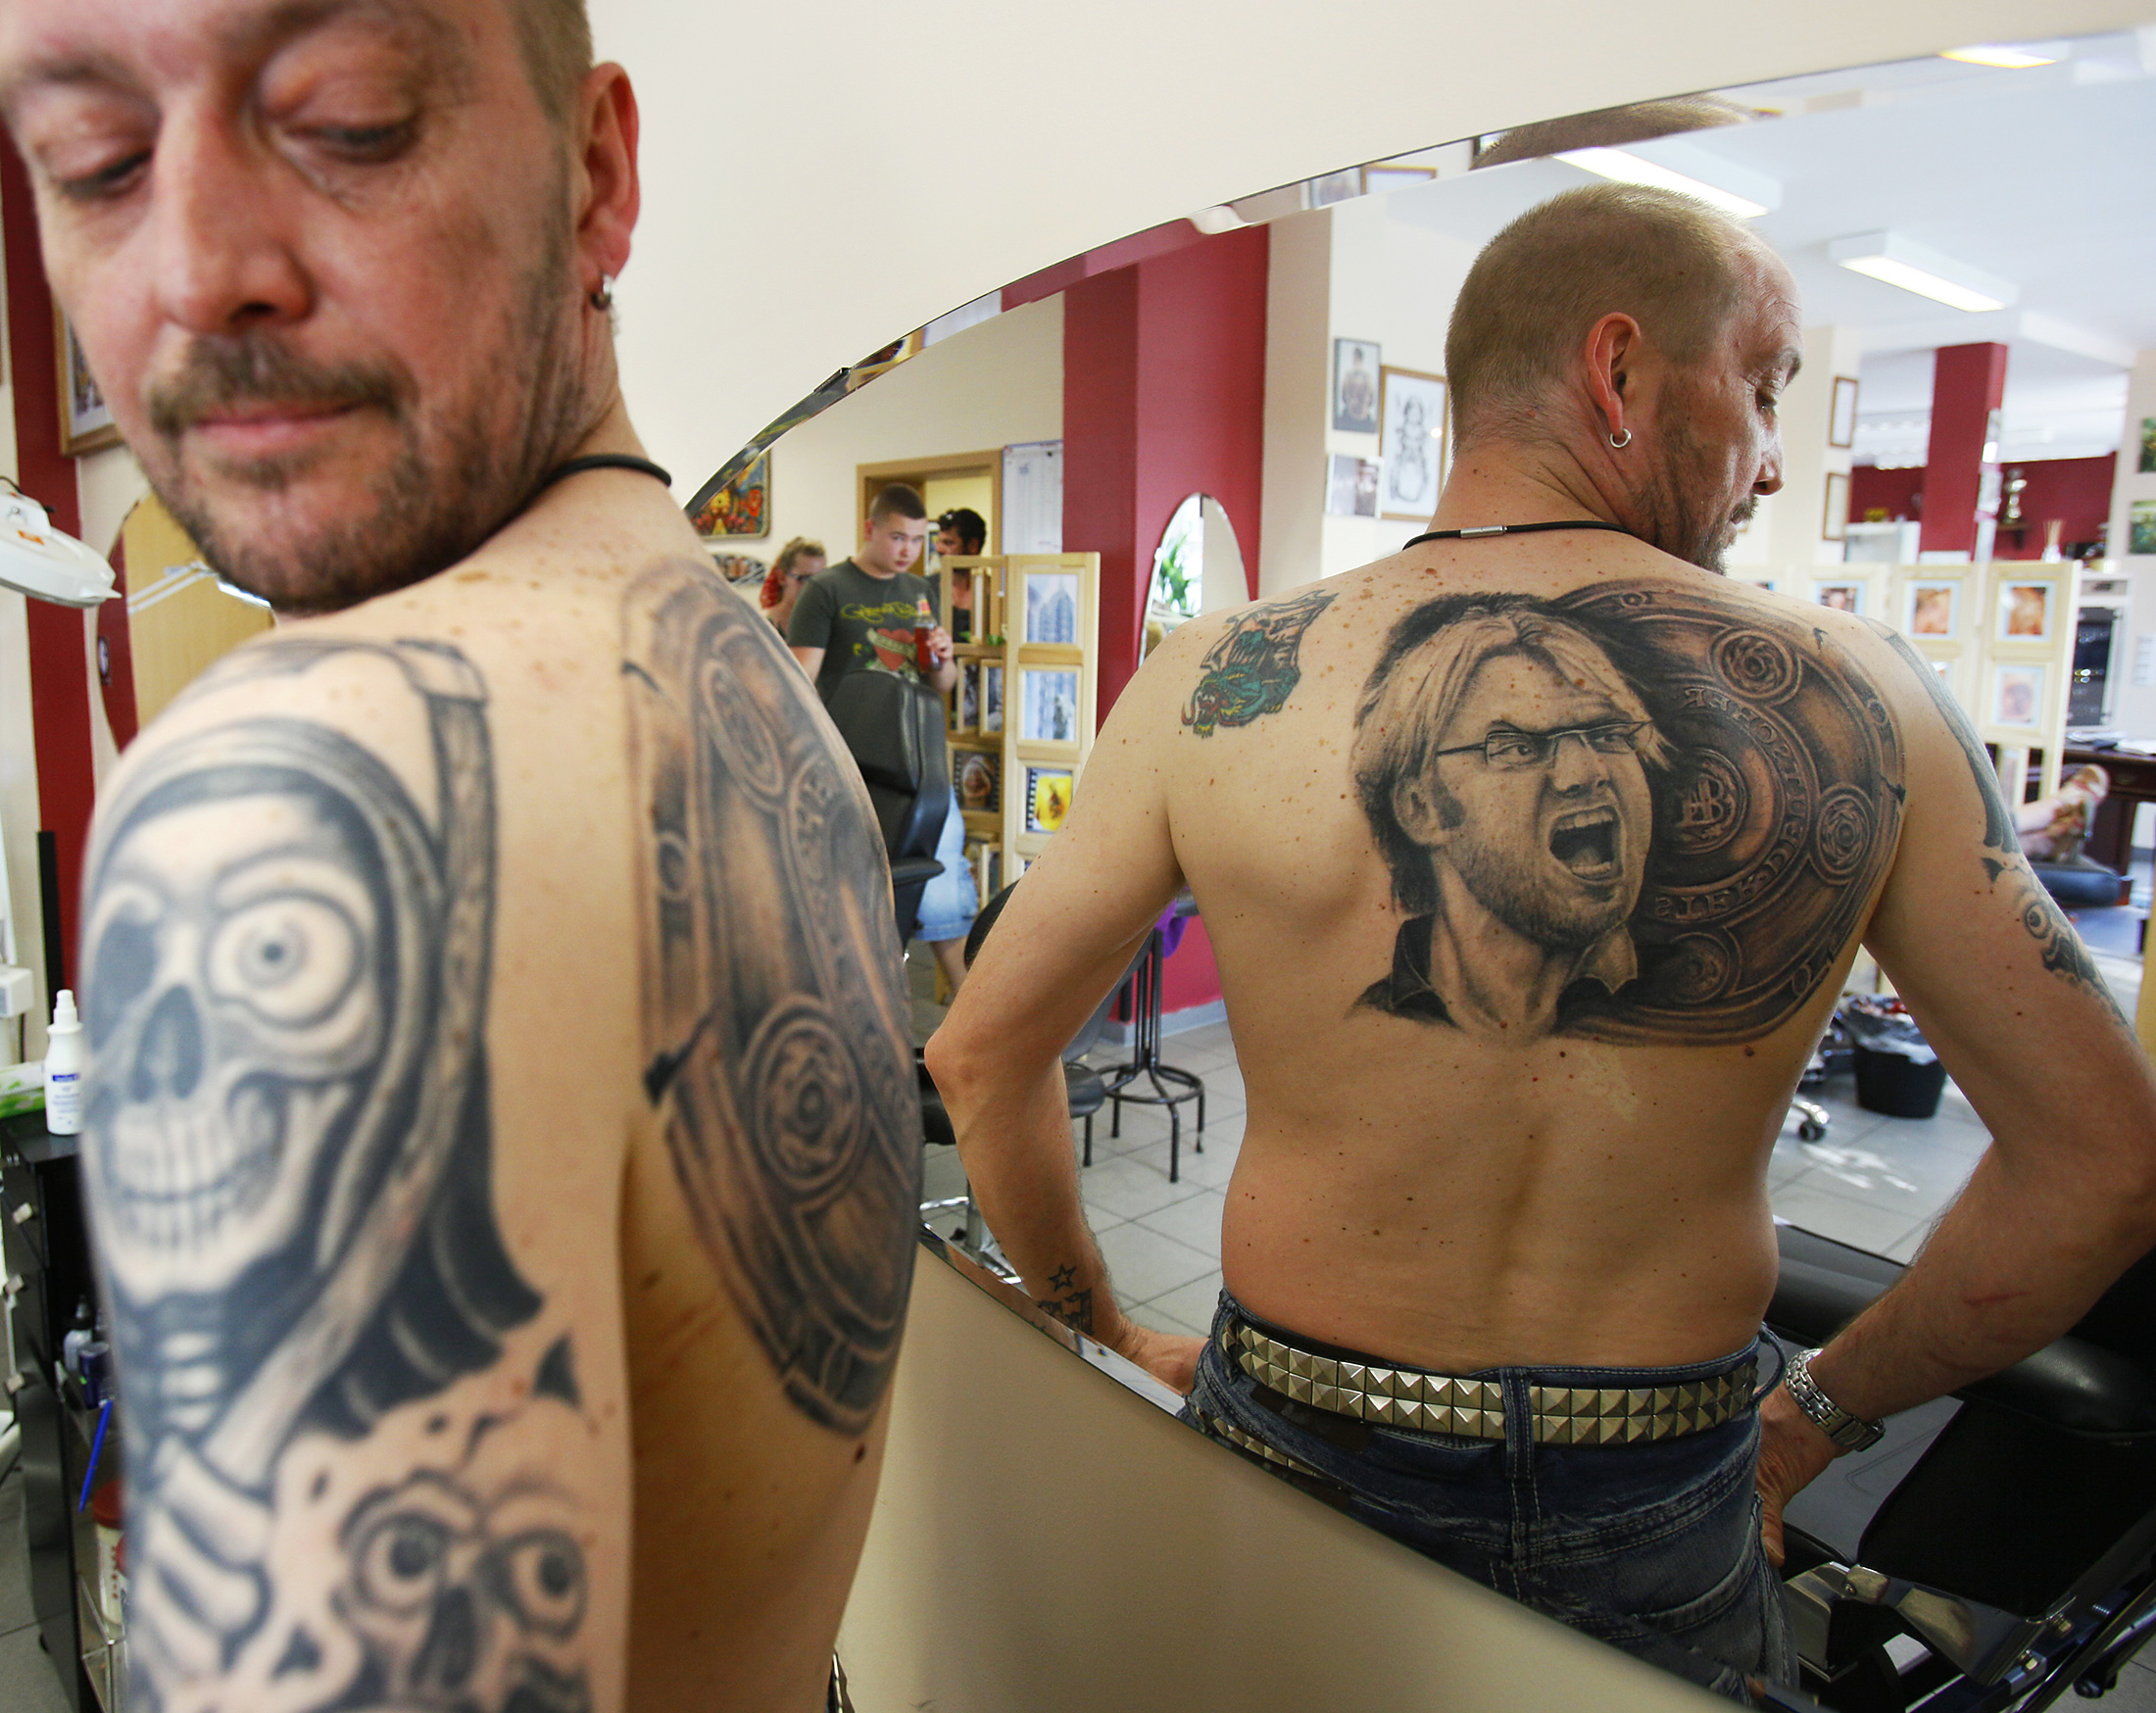 Soccer fan Martin Hueschen admires his new tattoo of Germany's soccer trophy and Borussia Dortmund soccer club's coach Juergen Klopp, at a tattoo shop in Unna, Germany on April 20, 2011.